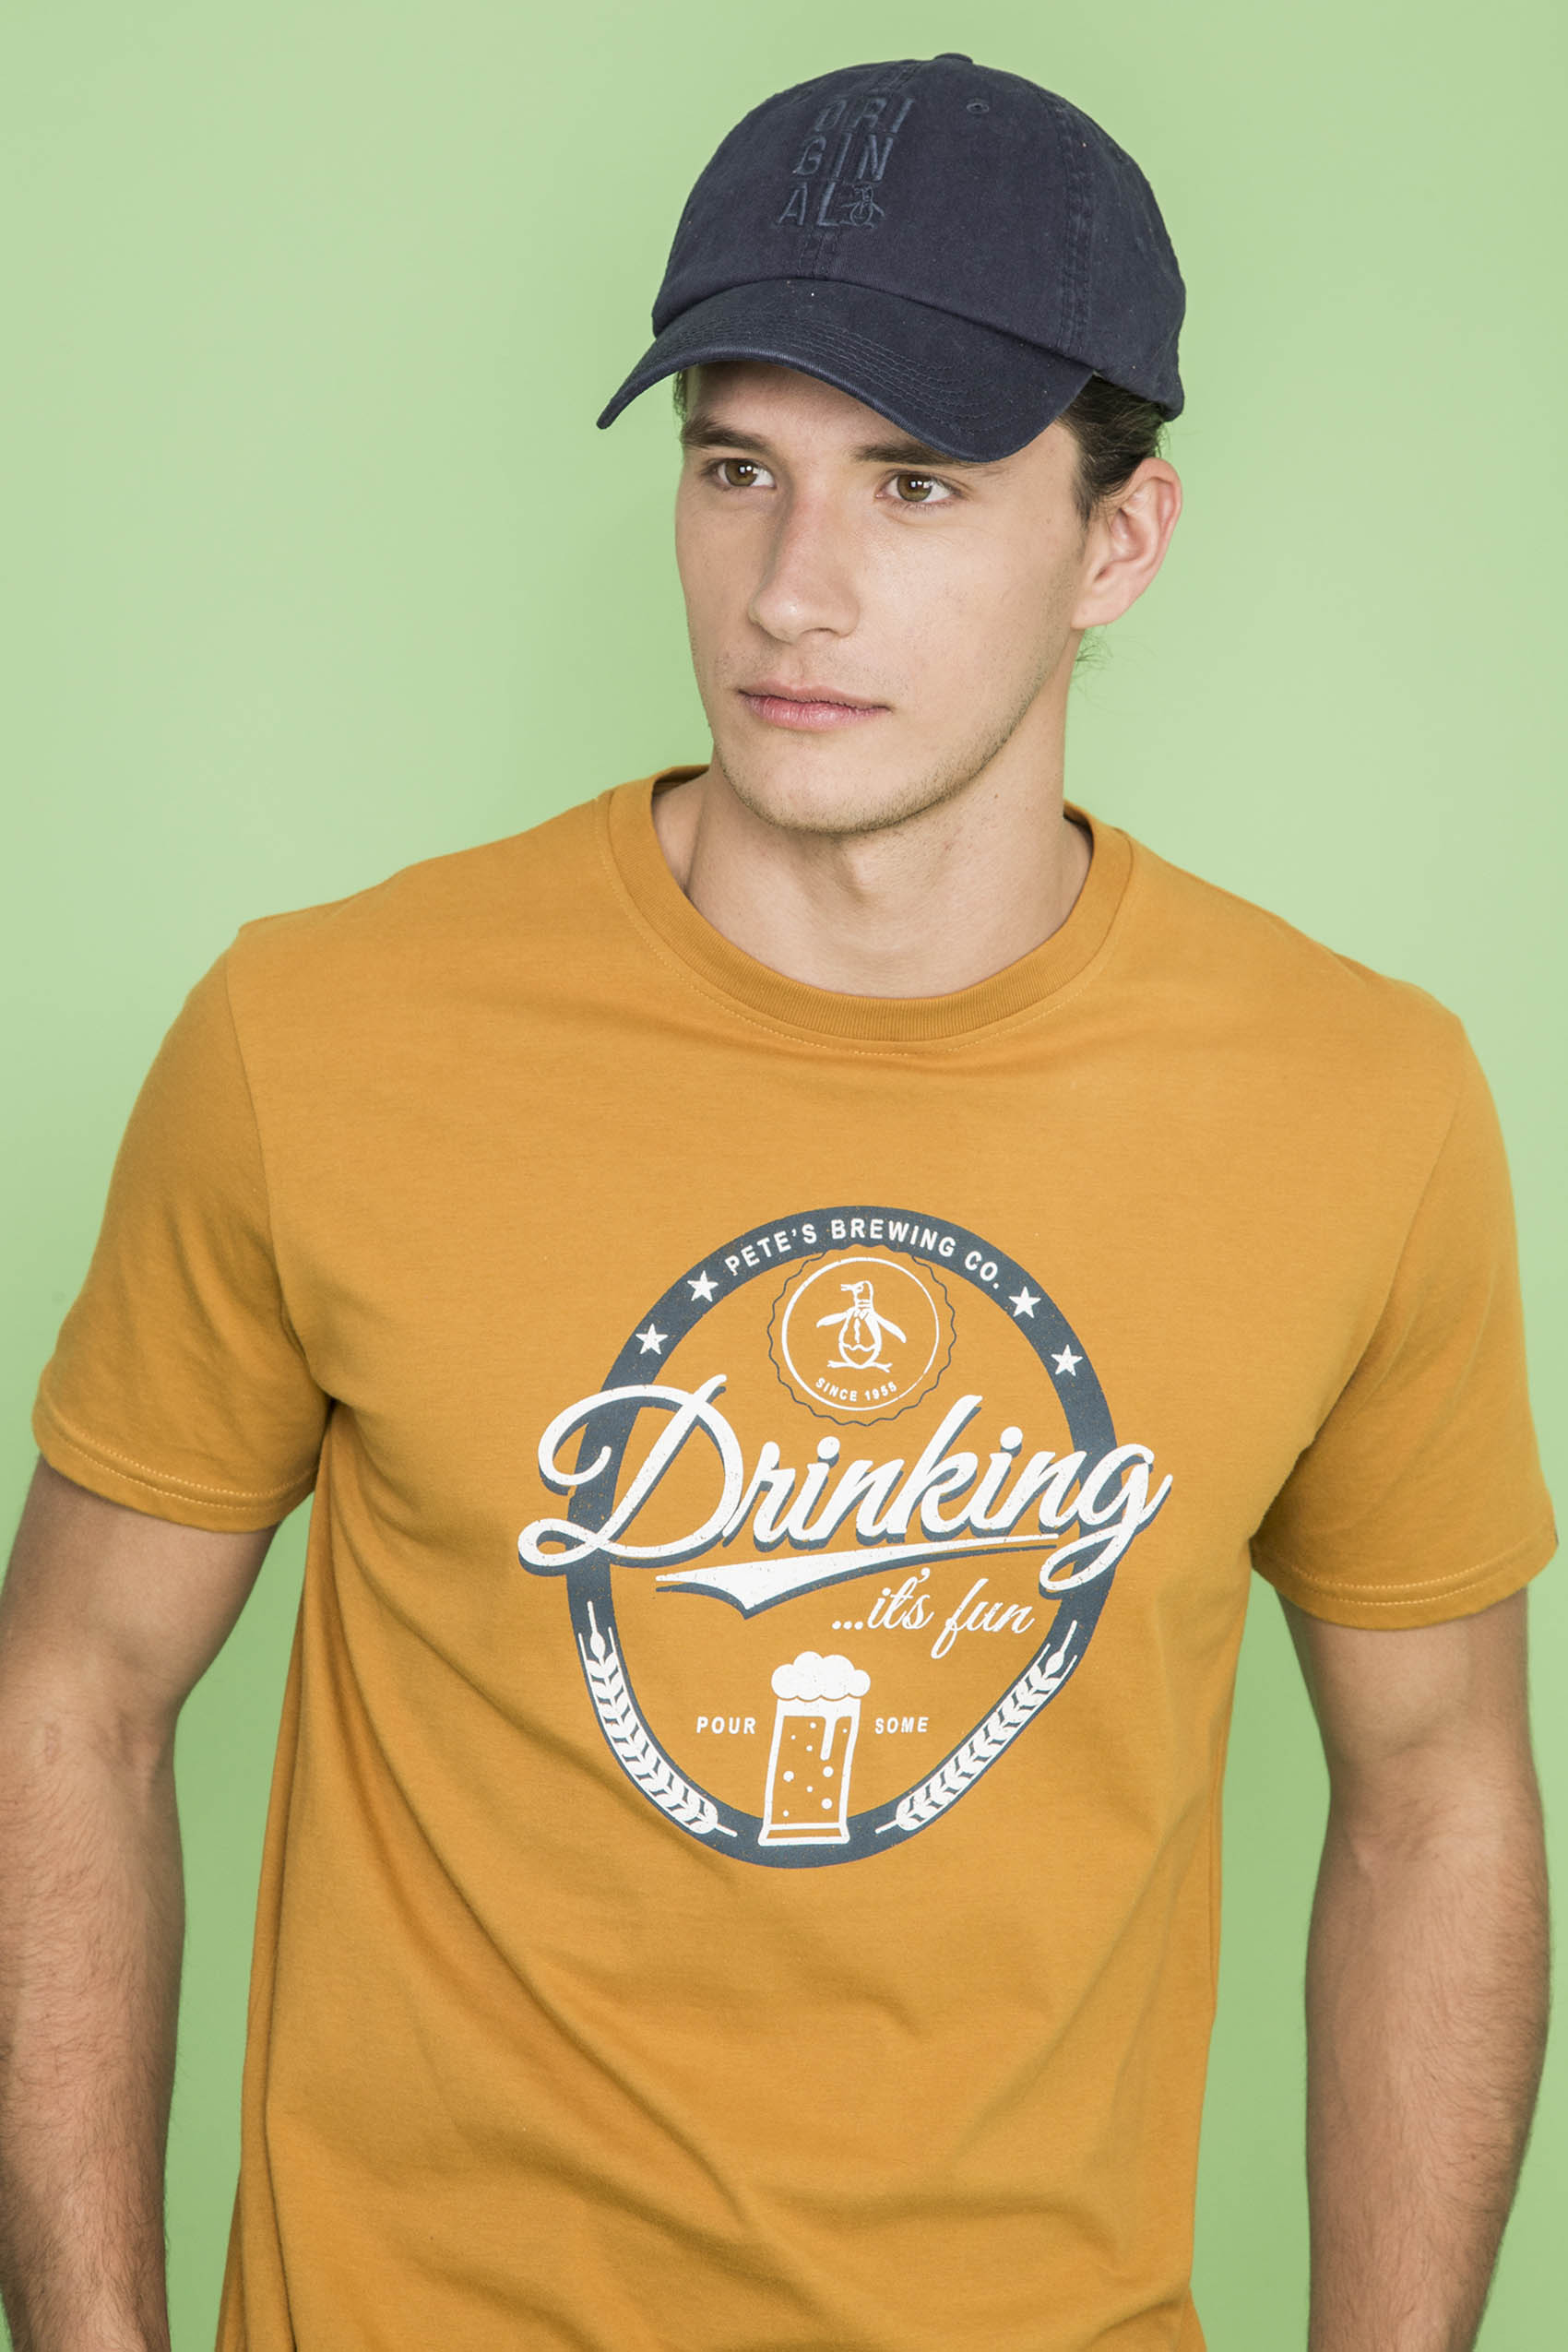 penguin_ss-drinking-is-fun-tee_15-26-2020__picture-17178